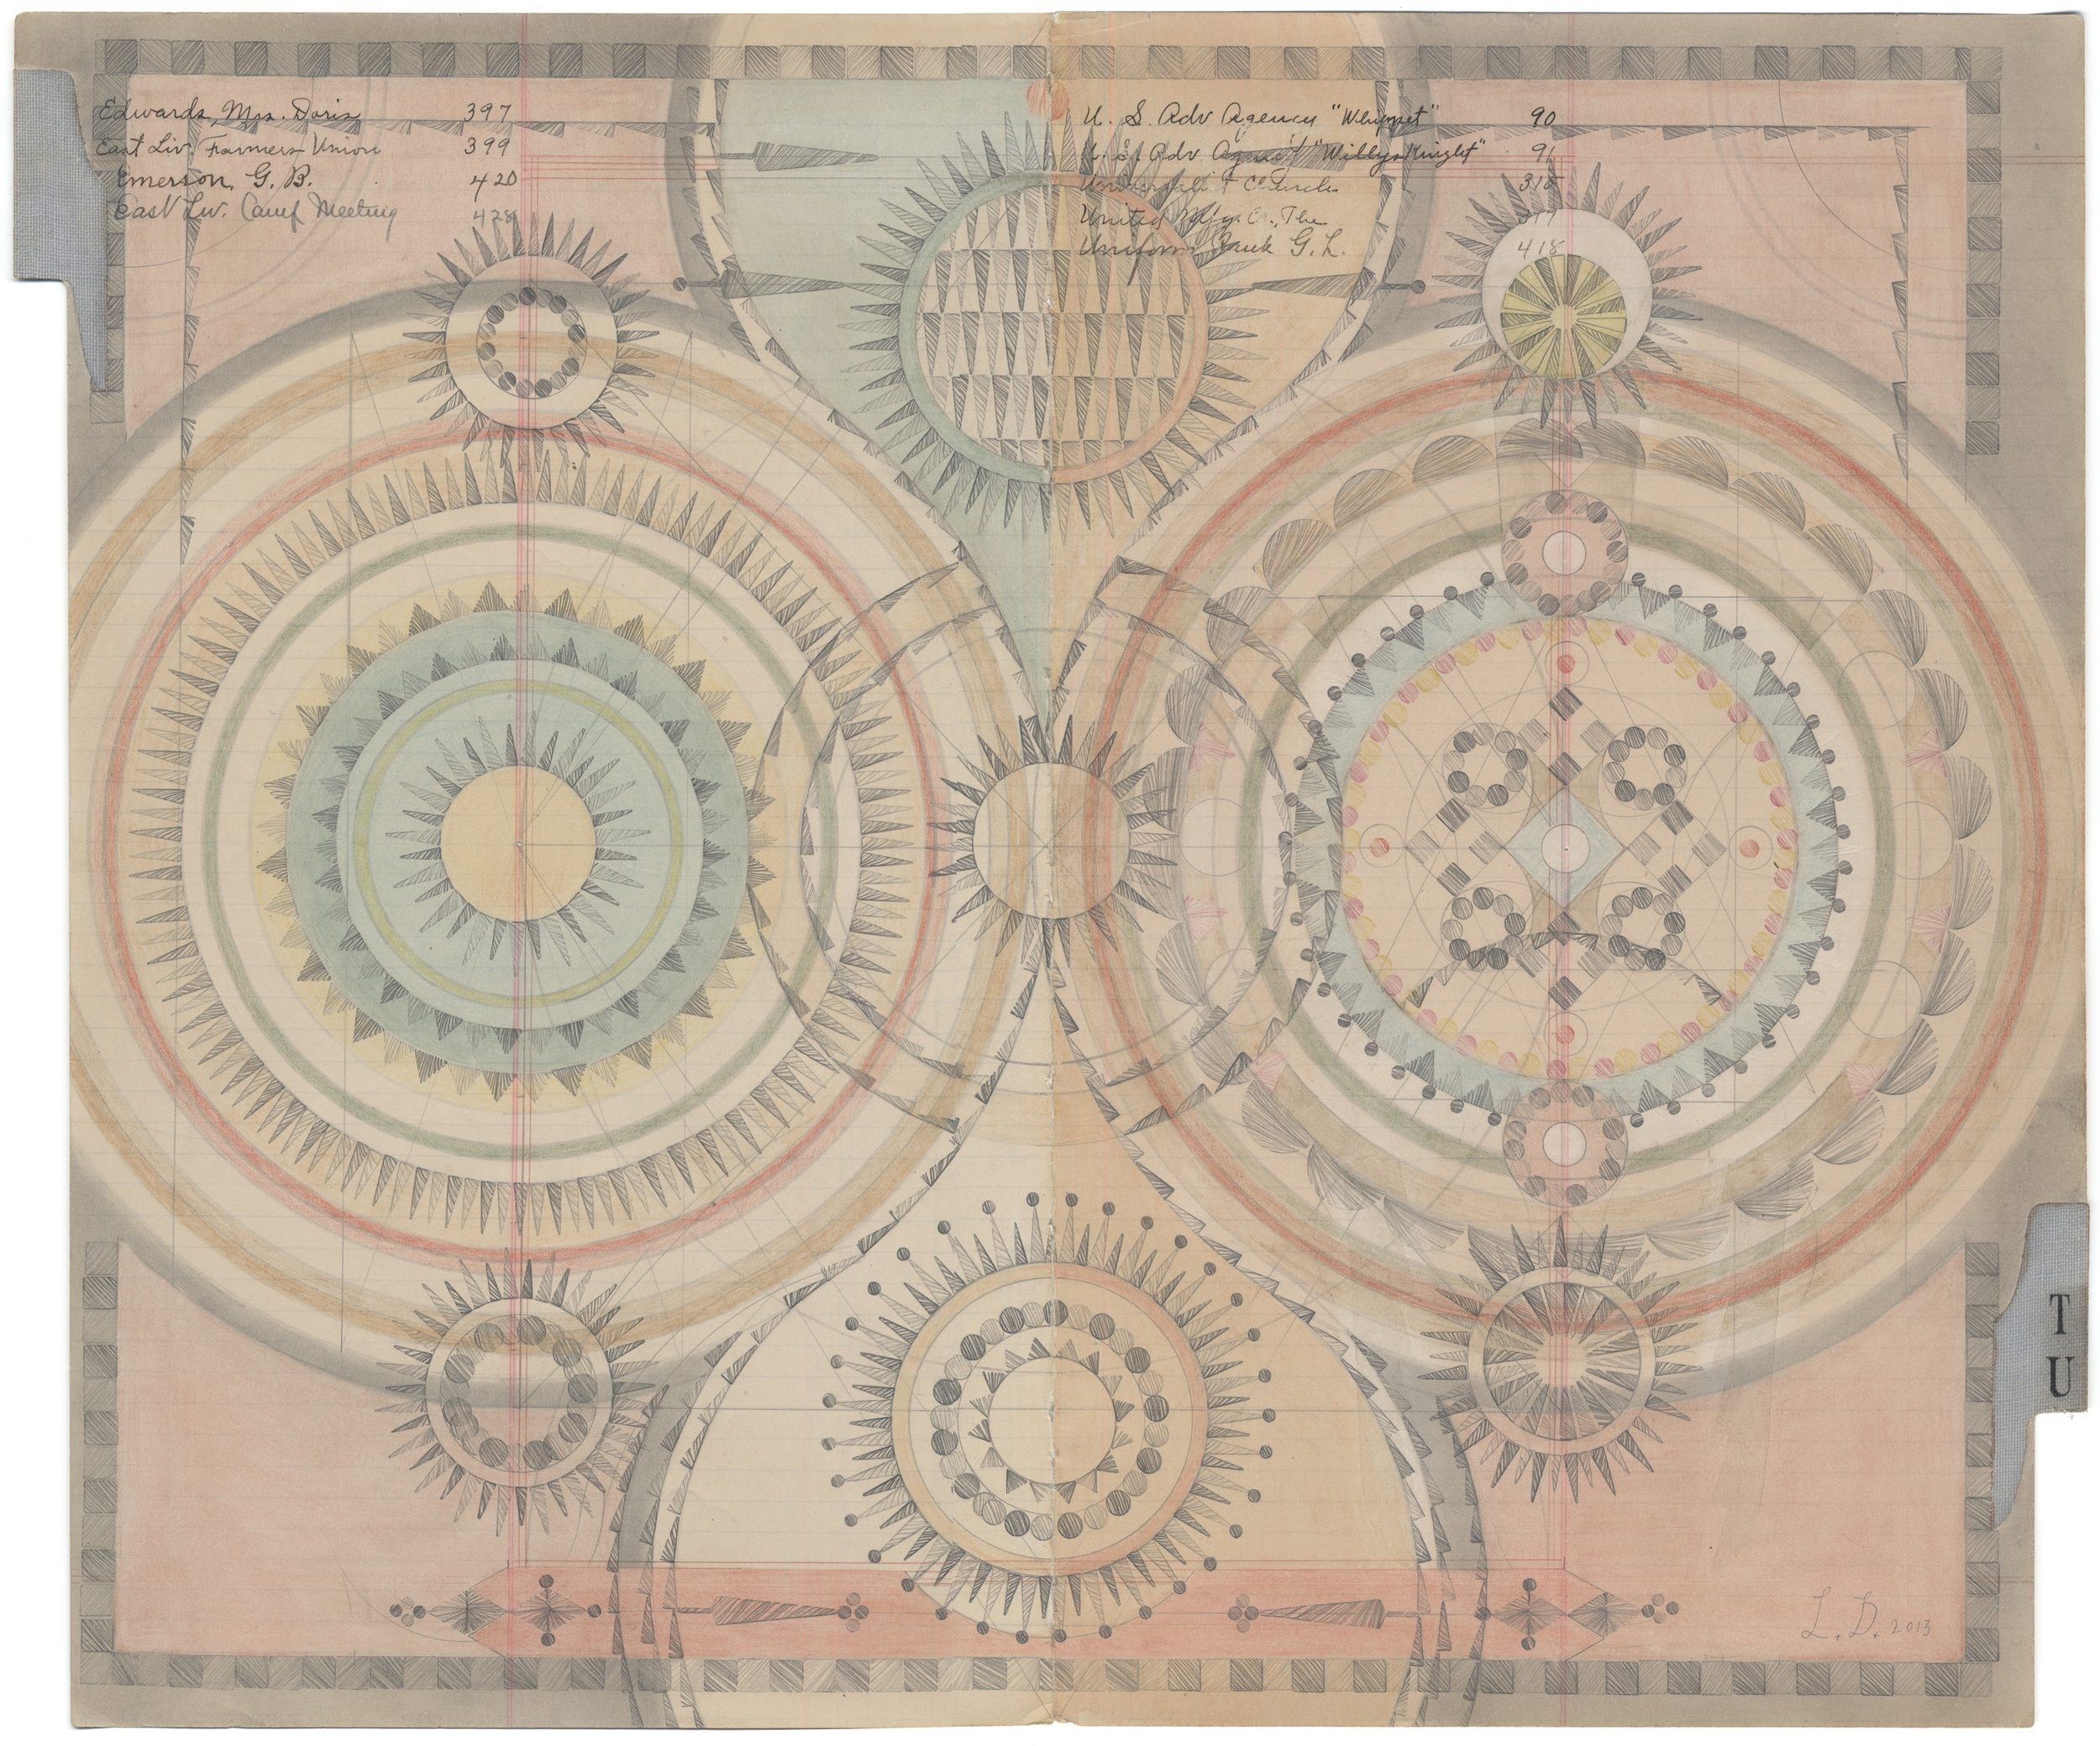 Simultaneity Irradiation,Colored Pencil and Graphite on Antique Ledger Book Pages.13.75 x 16.75 inches